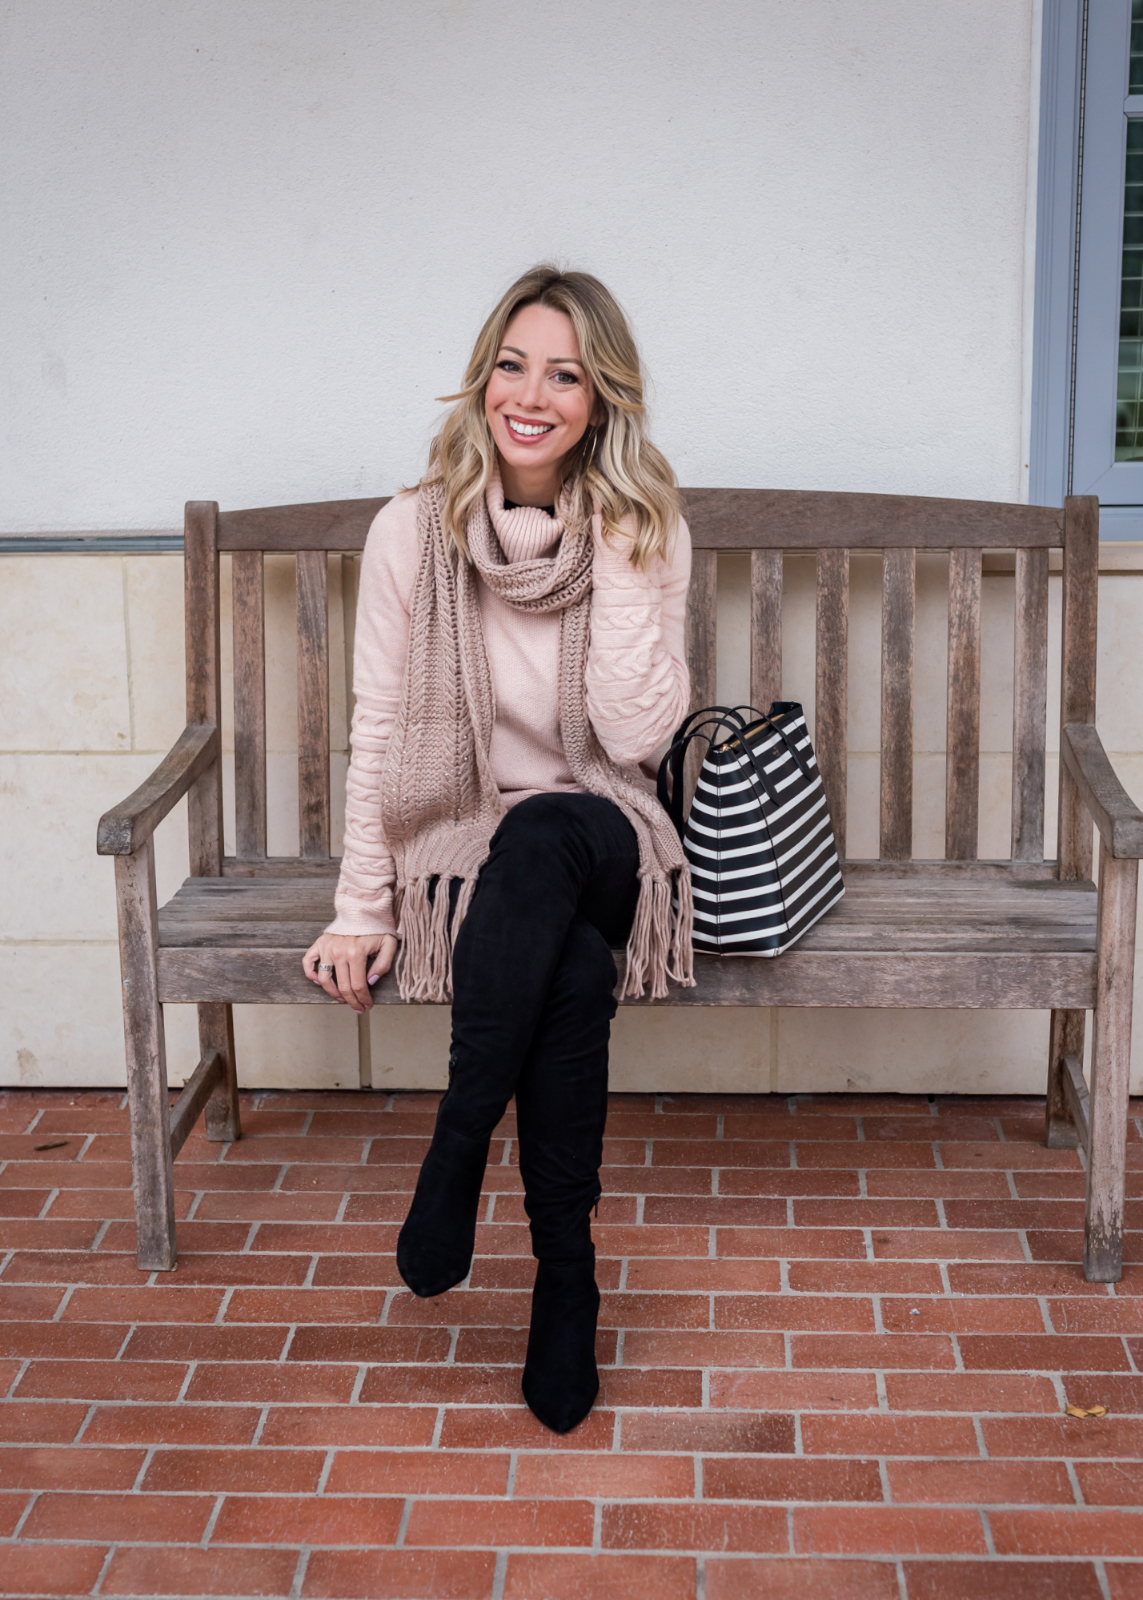 Cute winter outfit - pink sweater and black jeans